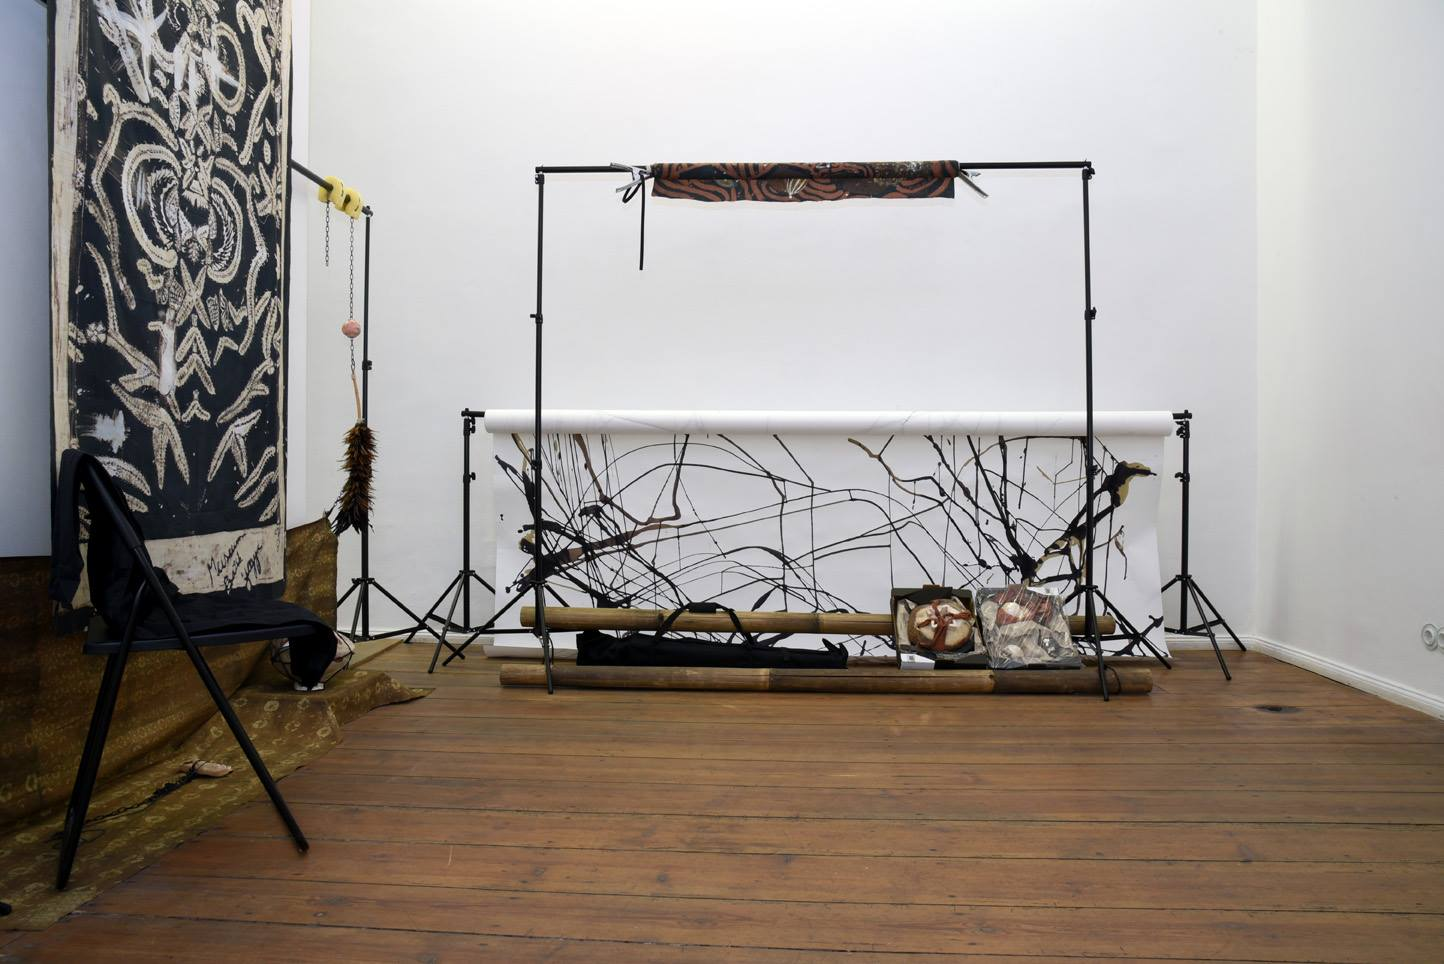 Ada Van Hoorebeke, Where Batik Belongs, 2016, installation view at Grimmuseum (4)